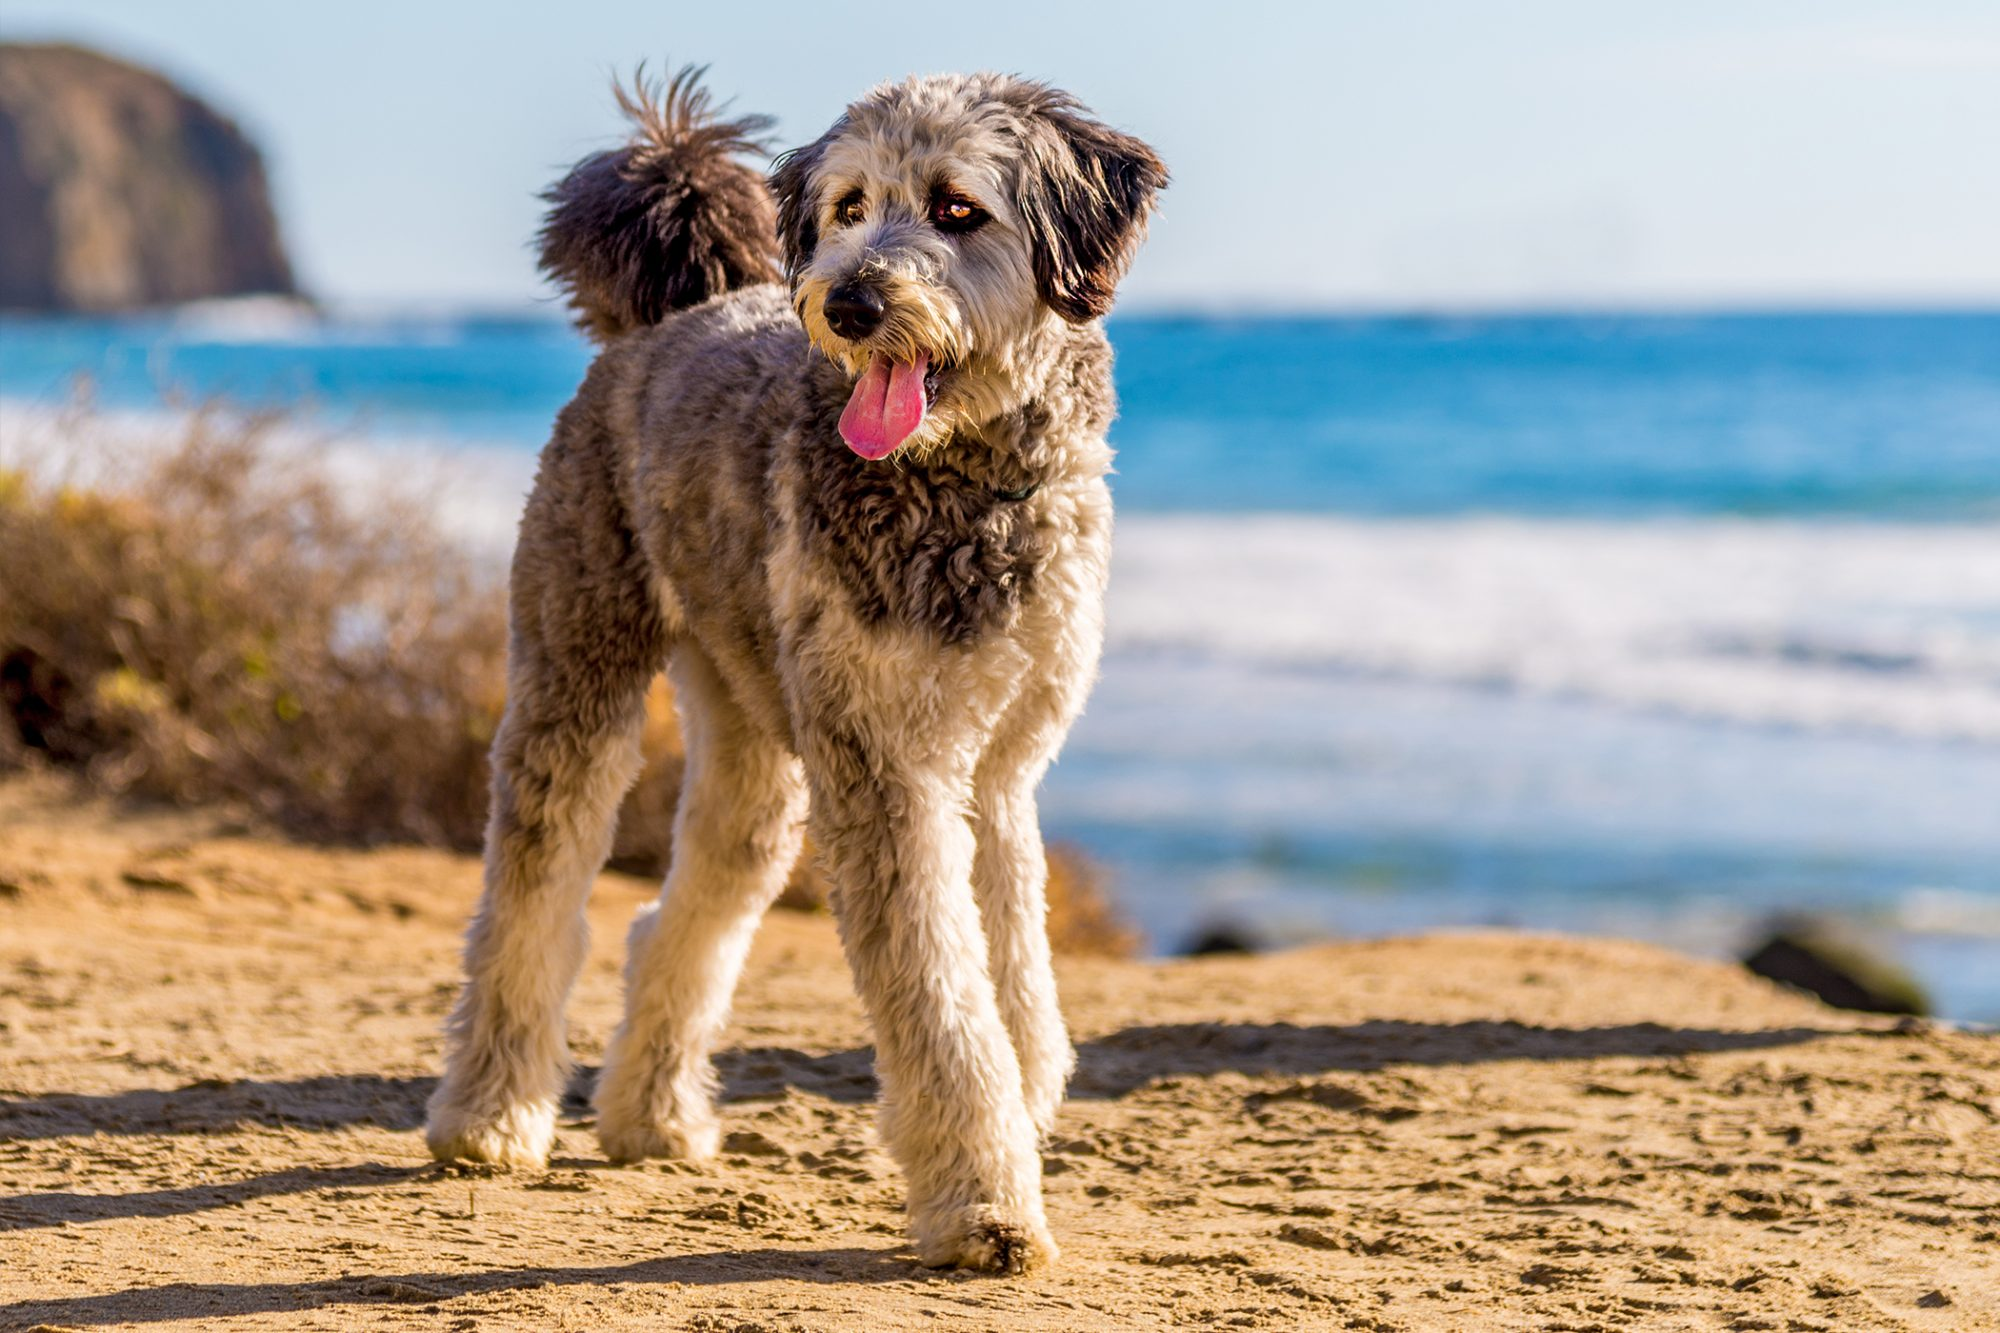 Aussiedoodle walks on beach with ocean in background